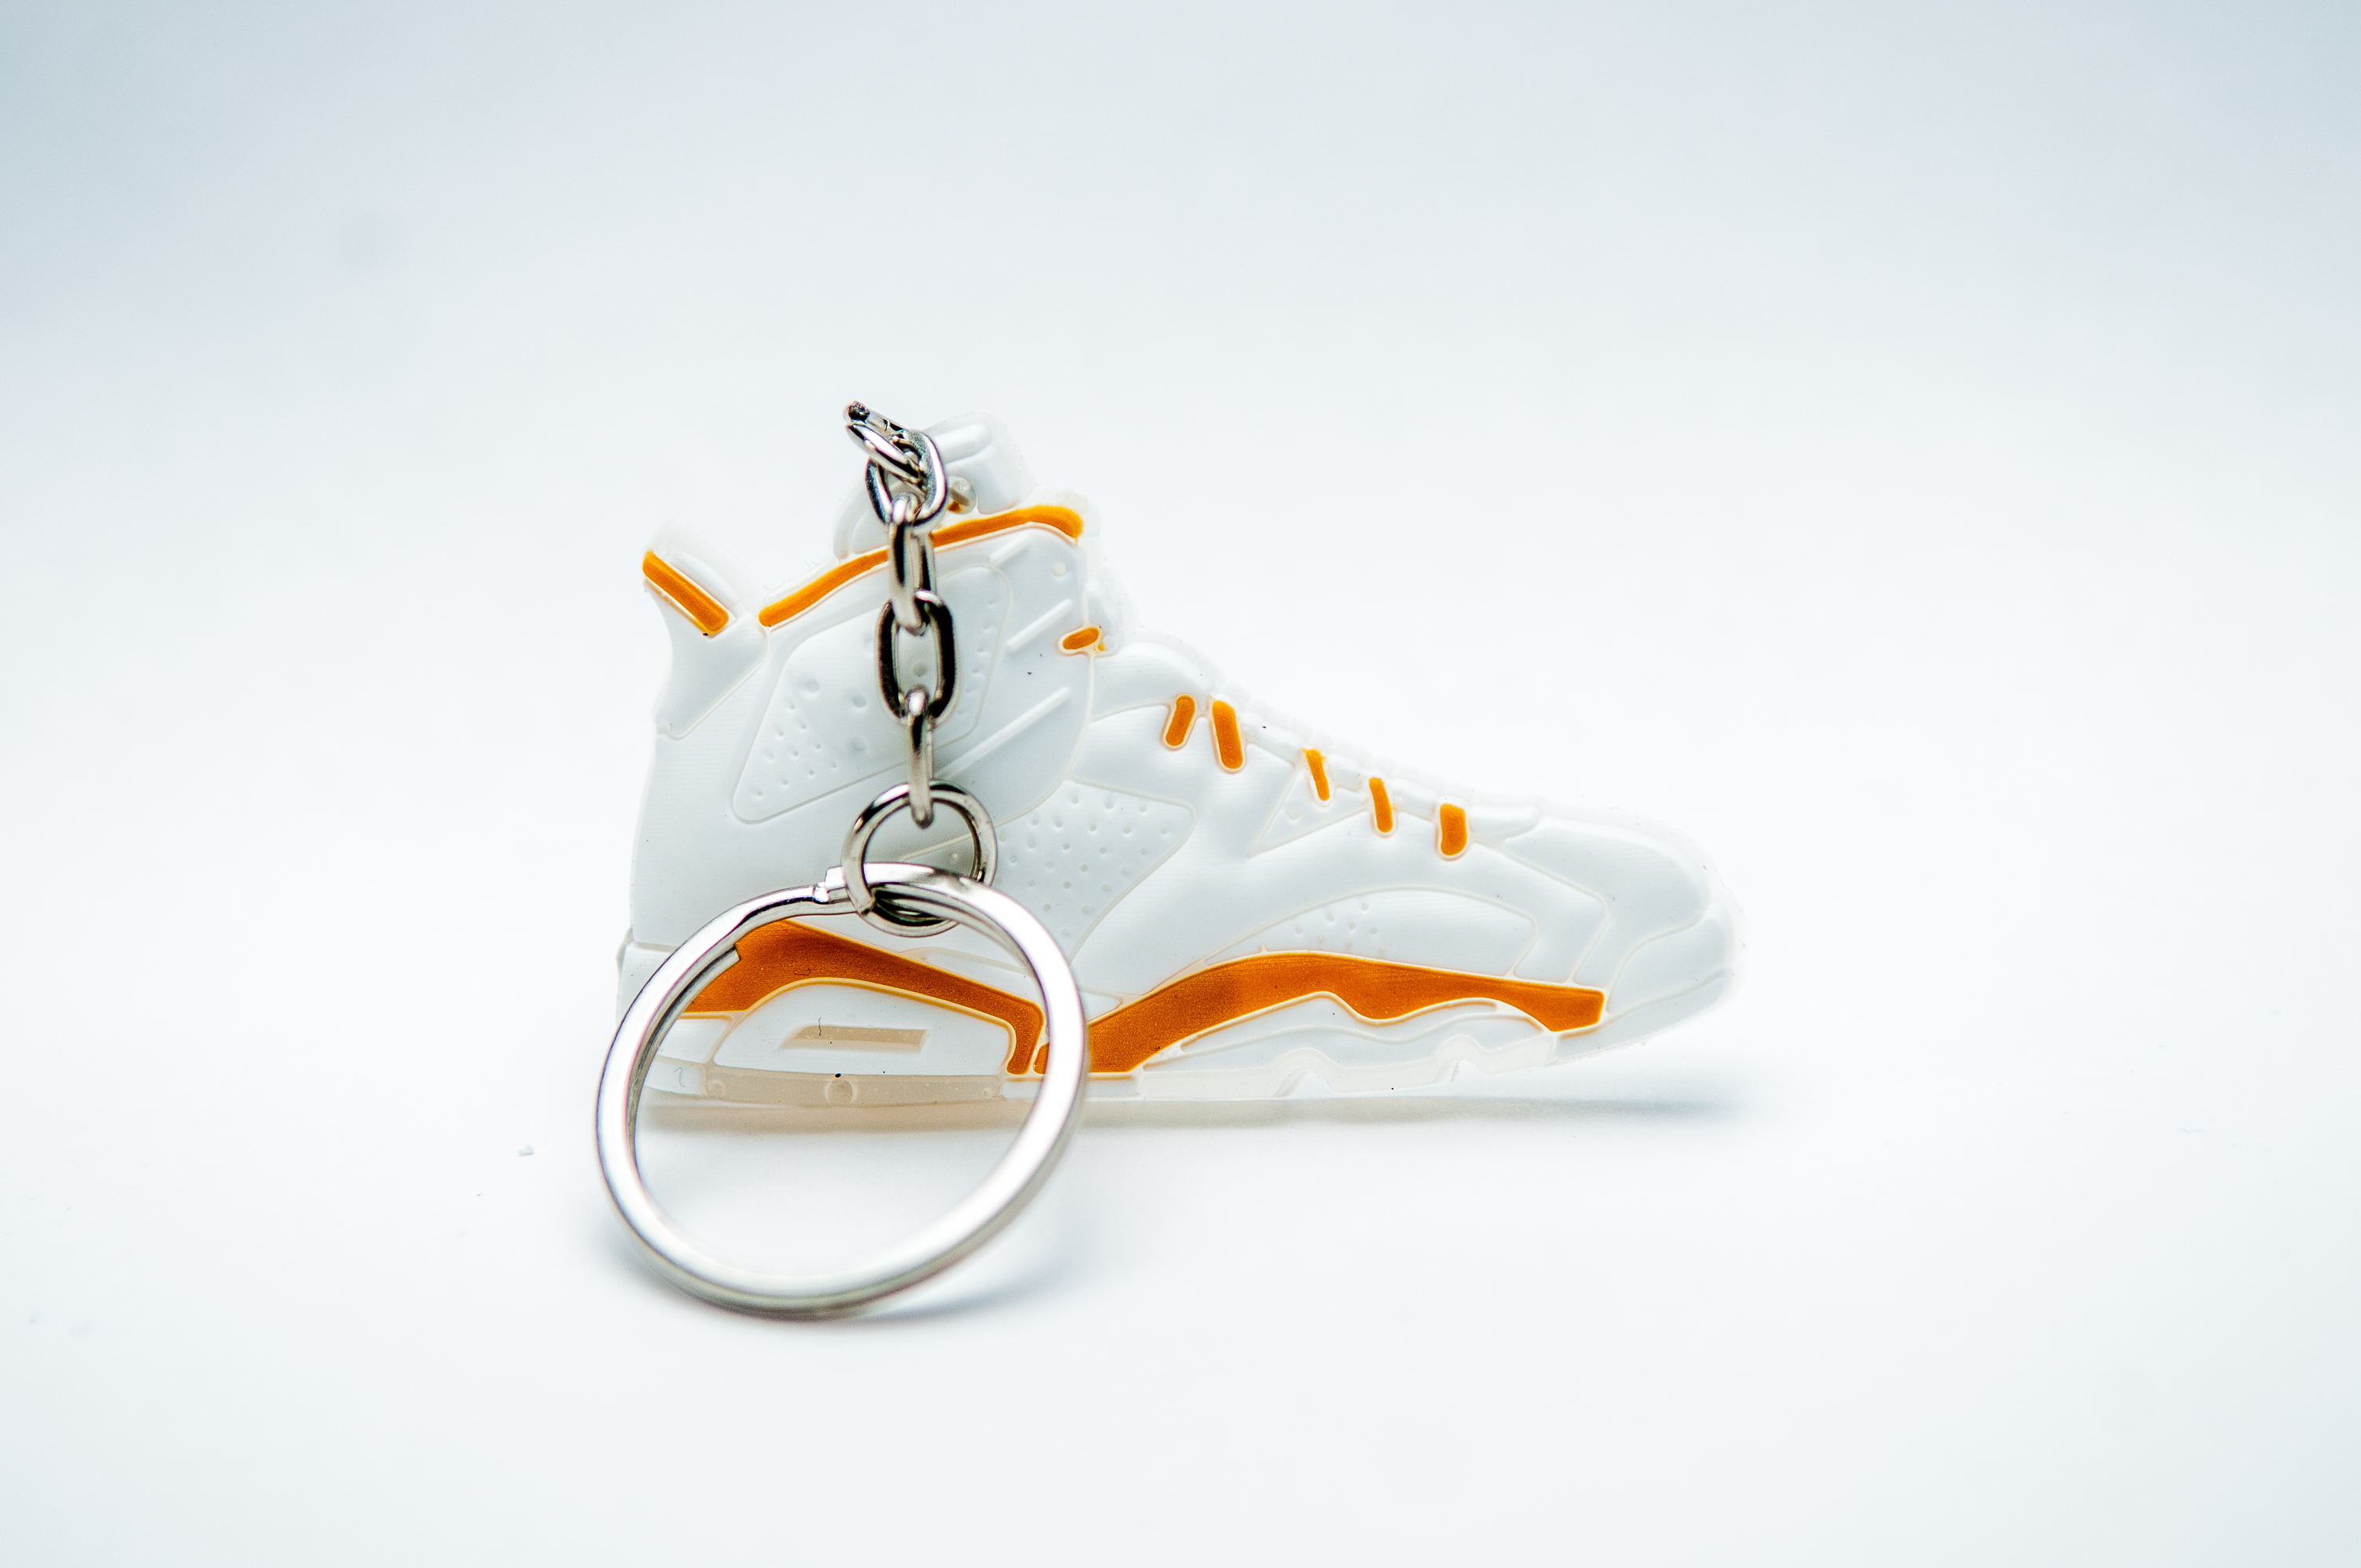 684291b3a240e6 Nike Air Jordan 6 olympic Retro 6 Shoes White Gold - Kool keyringsKool  keyrings